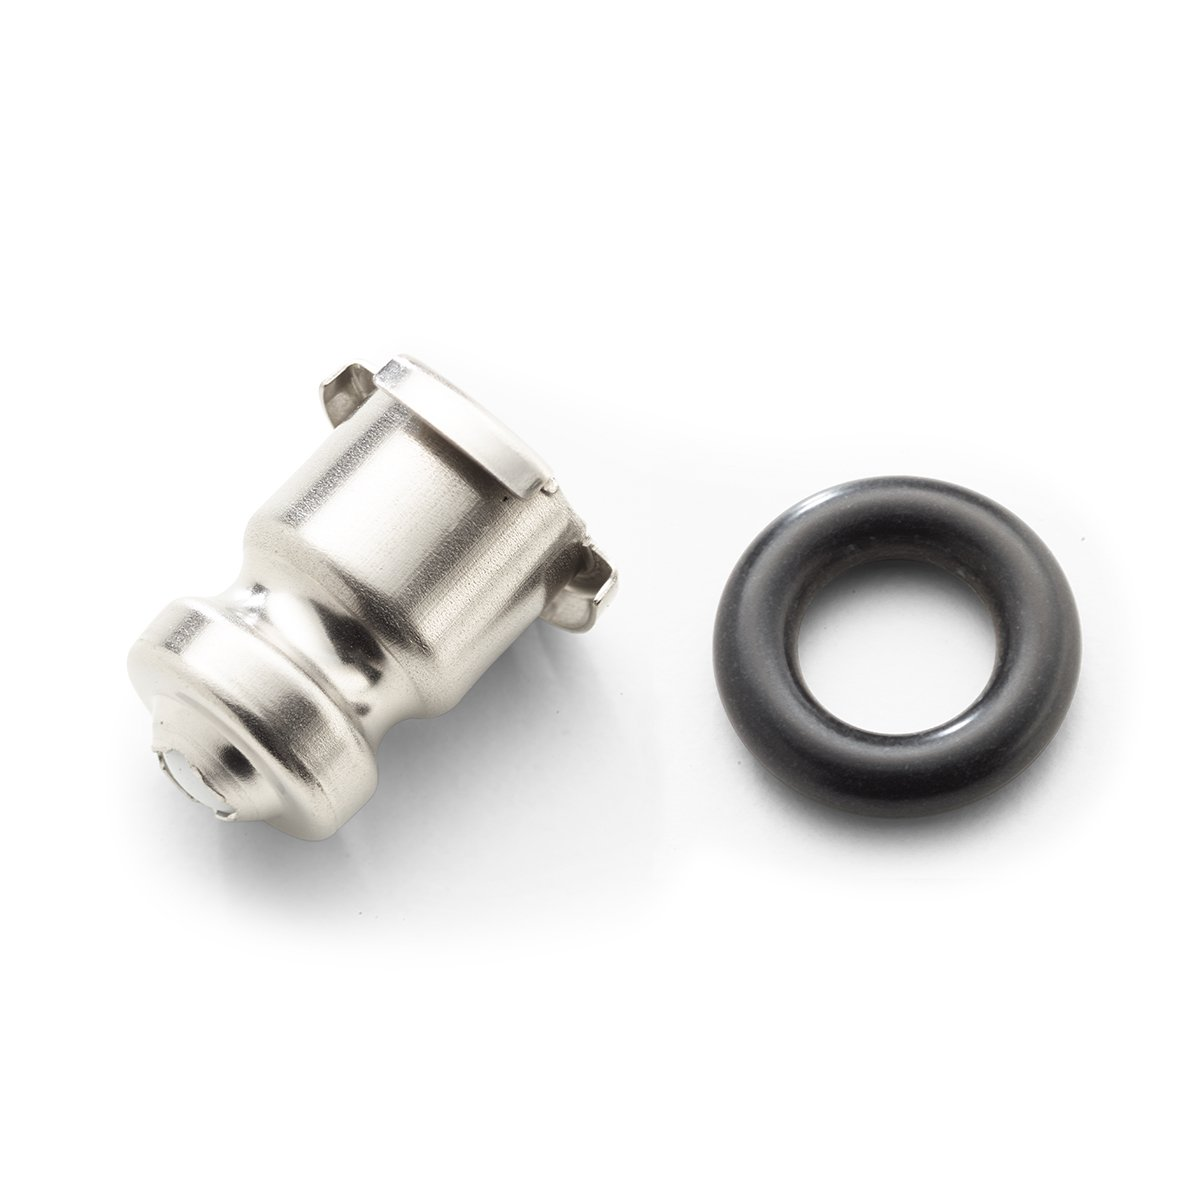 Fissler Royal Complete Euromatic Valve 11 631 00 750